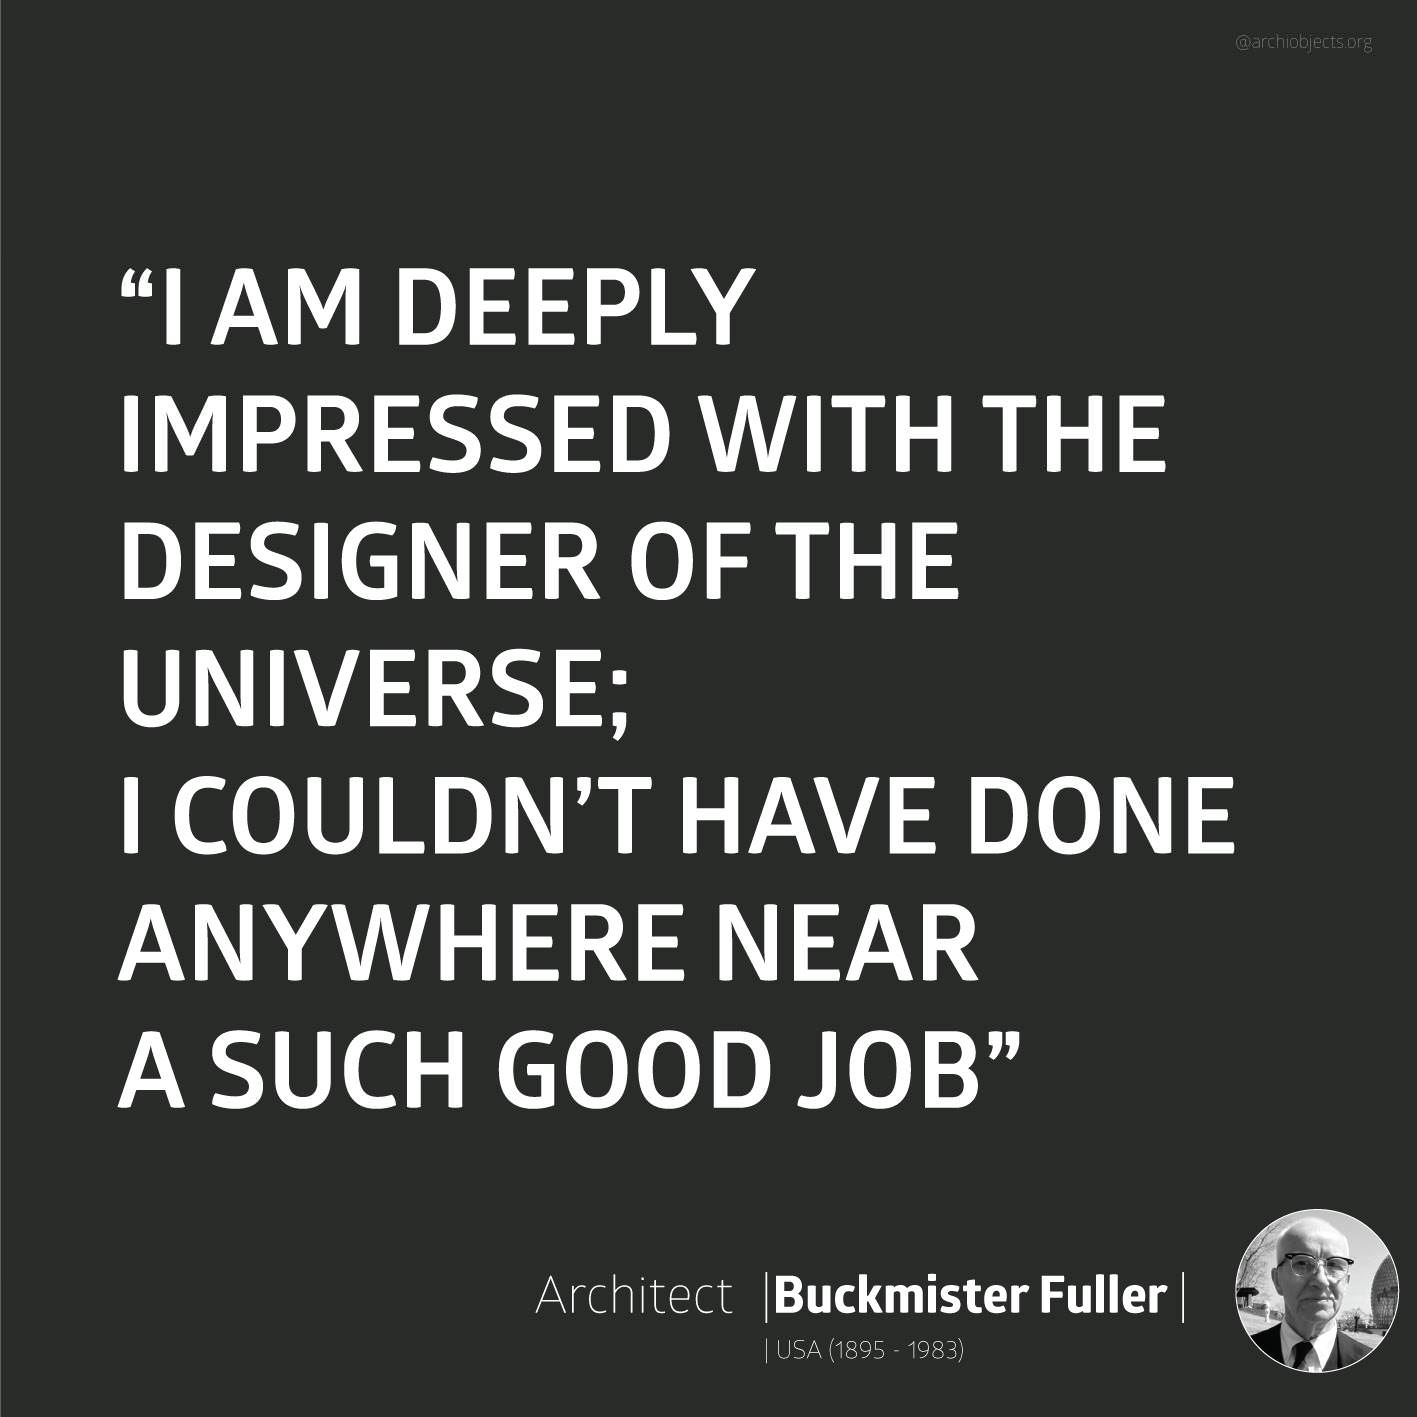 buckmister fuller Architectural Quotes - Worth spreading Architects' voice